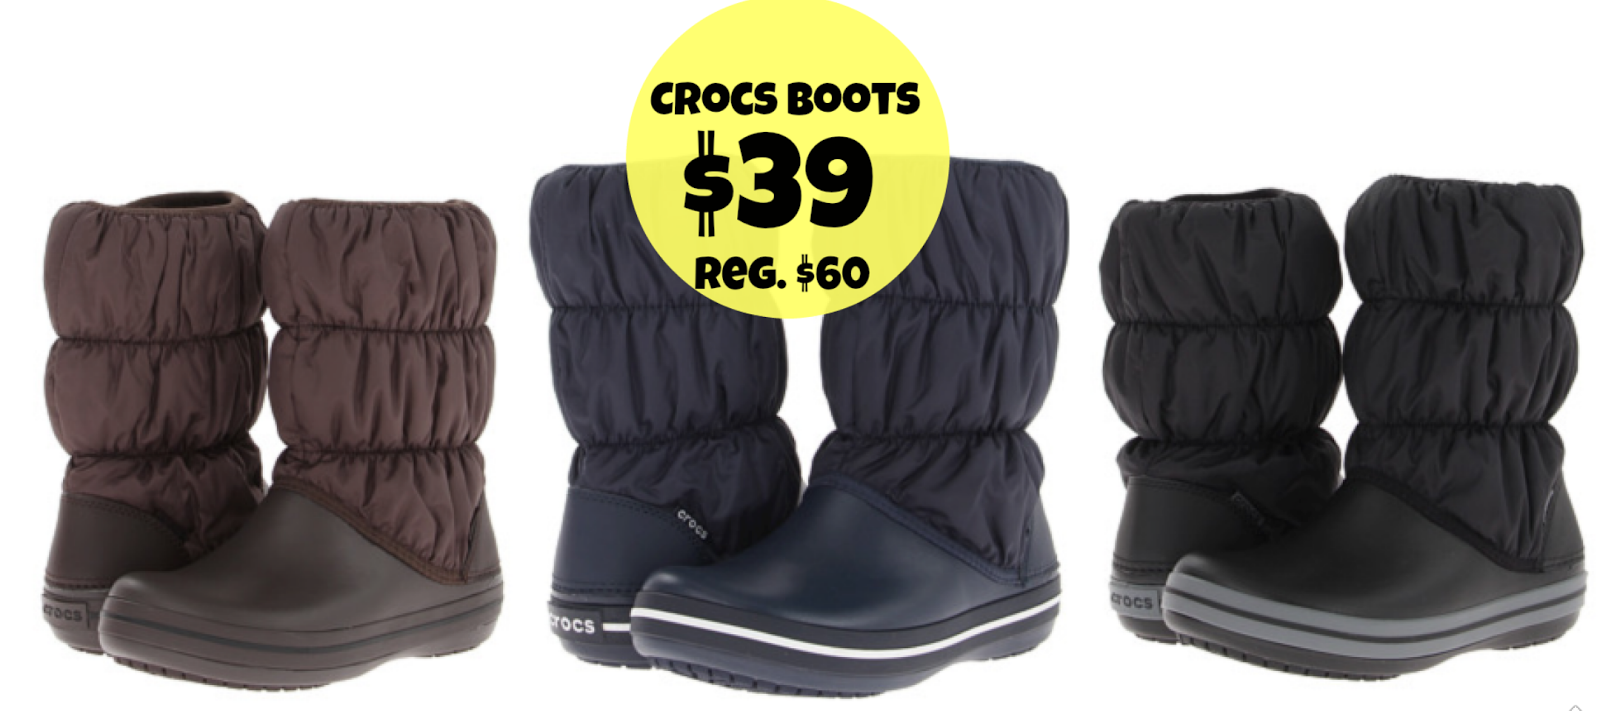 http://www.thebinderladies.com/2014/10/6pm-crocs-winter-puff-boots-39-free.html